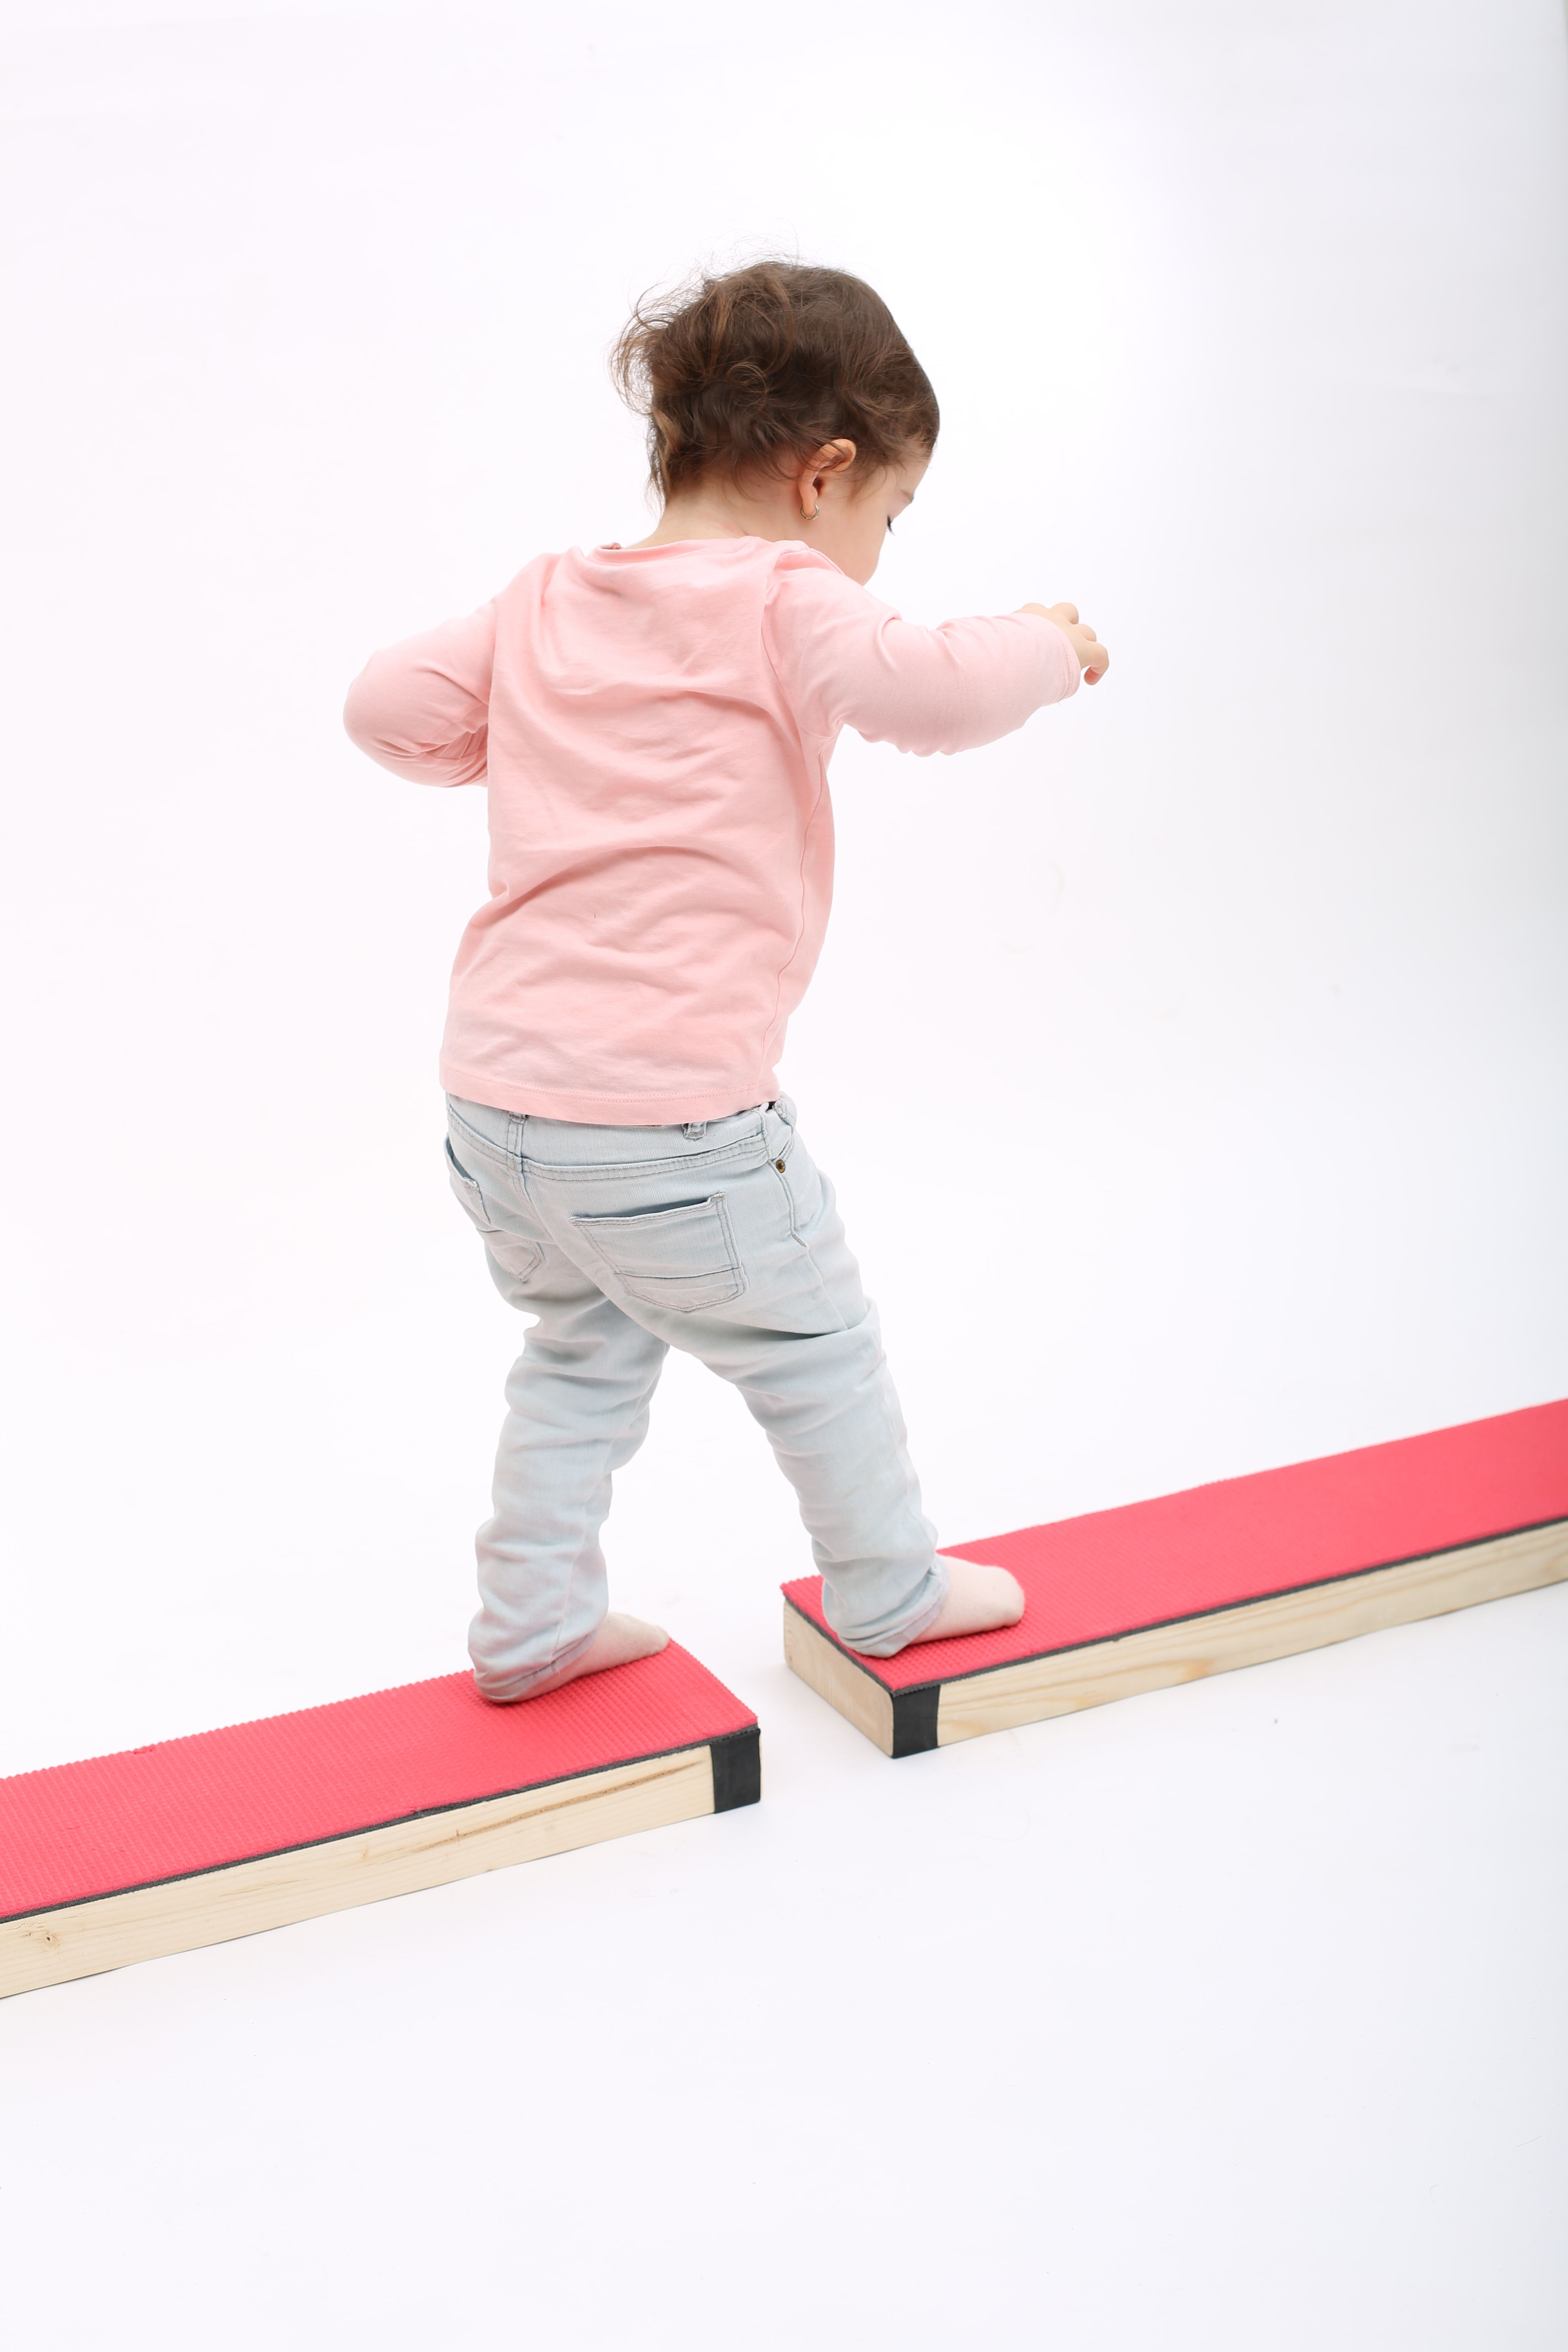 Balance board for kids wooden educational toys